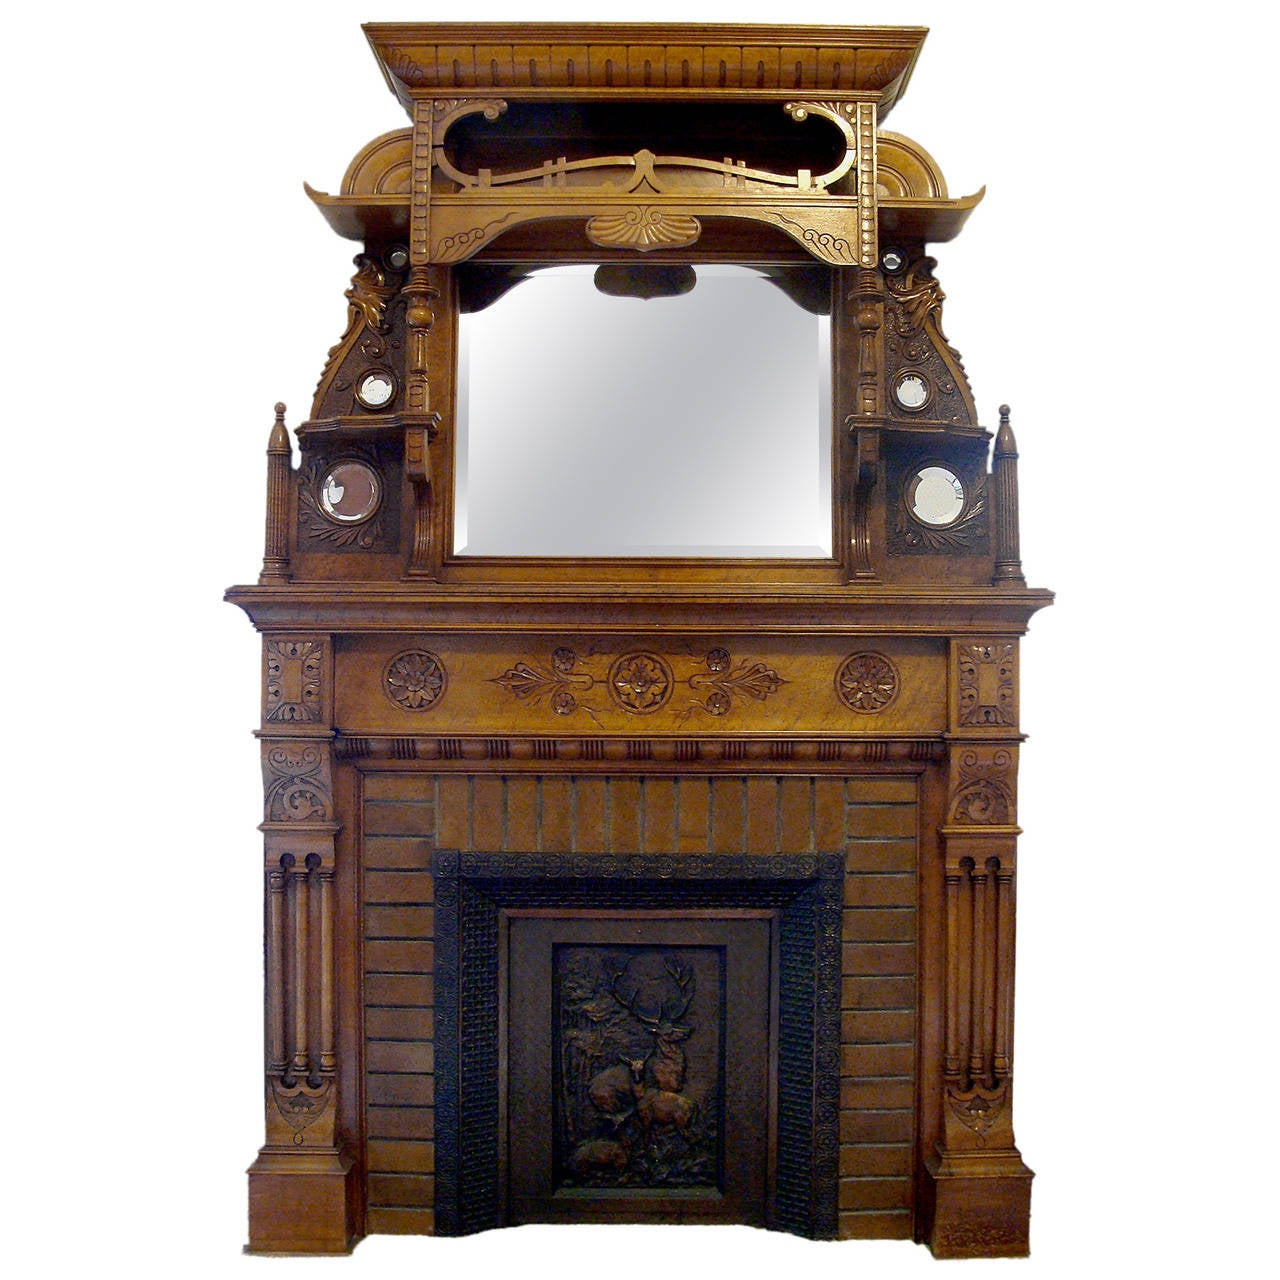 unique 1890s carved maple fireplace mantel at 1stdibs